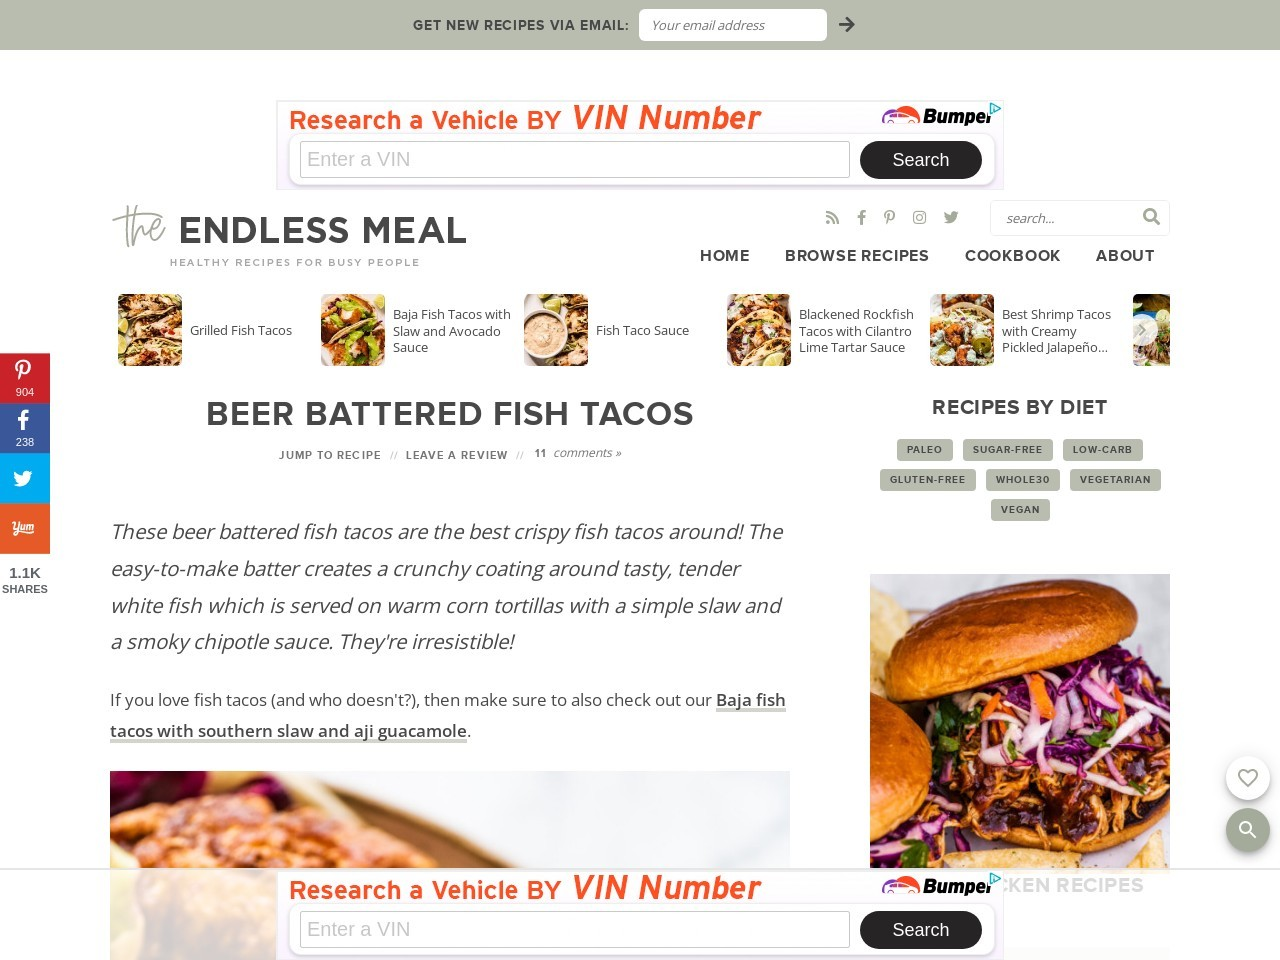 Beer Battered Fish Tacos – The Endless Meal